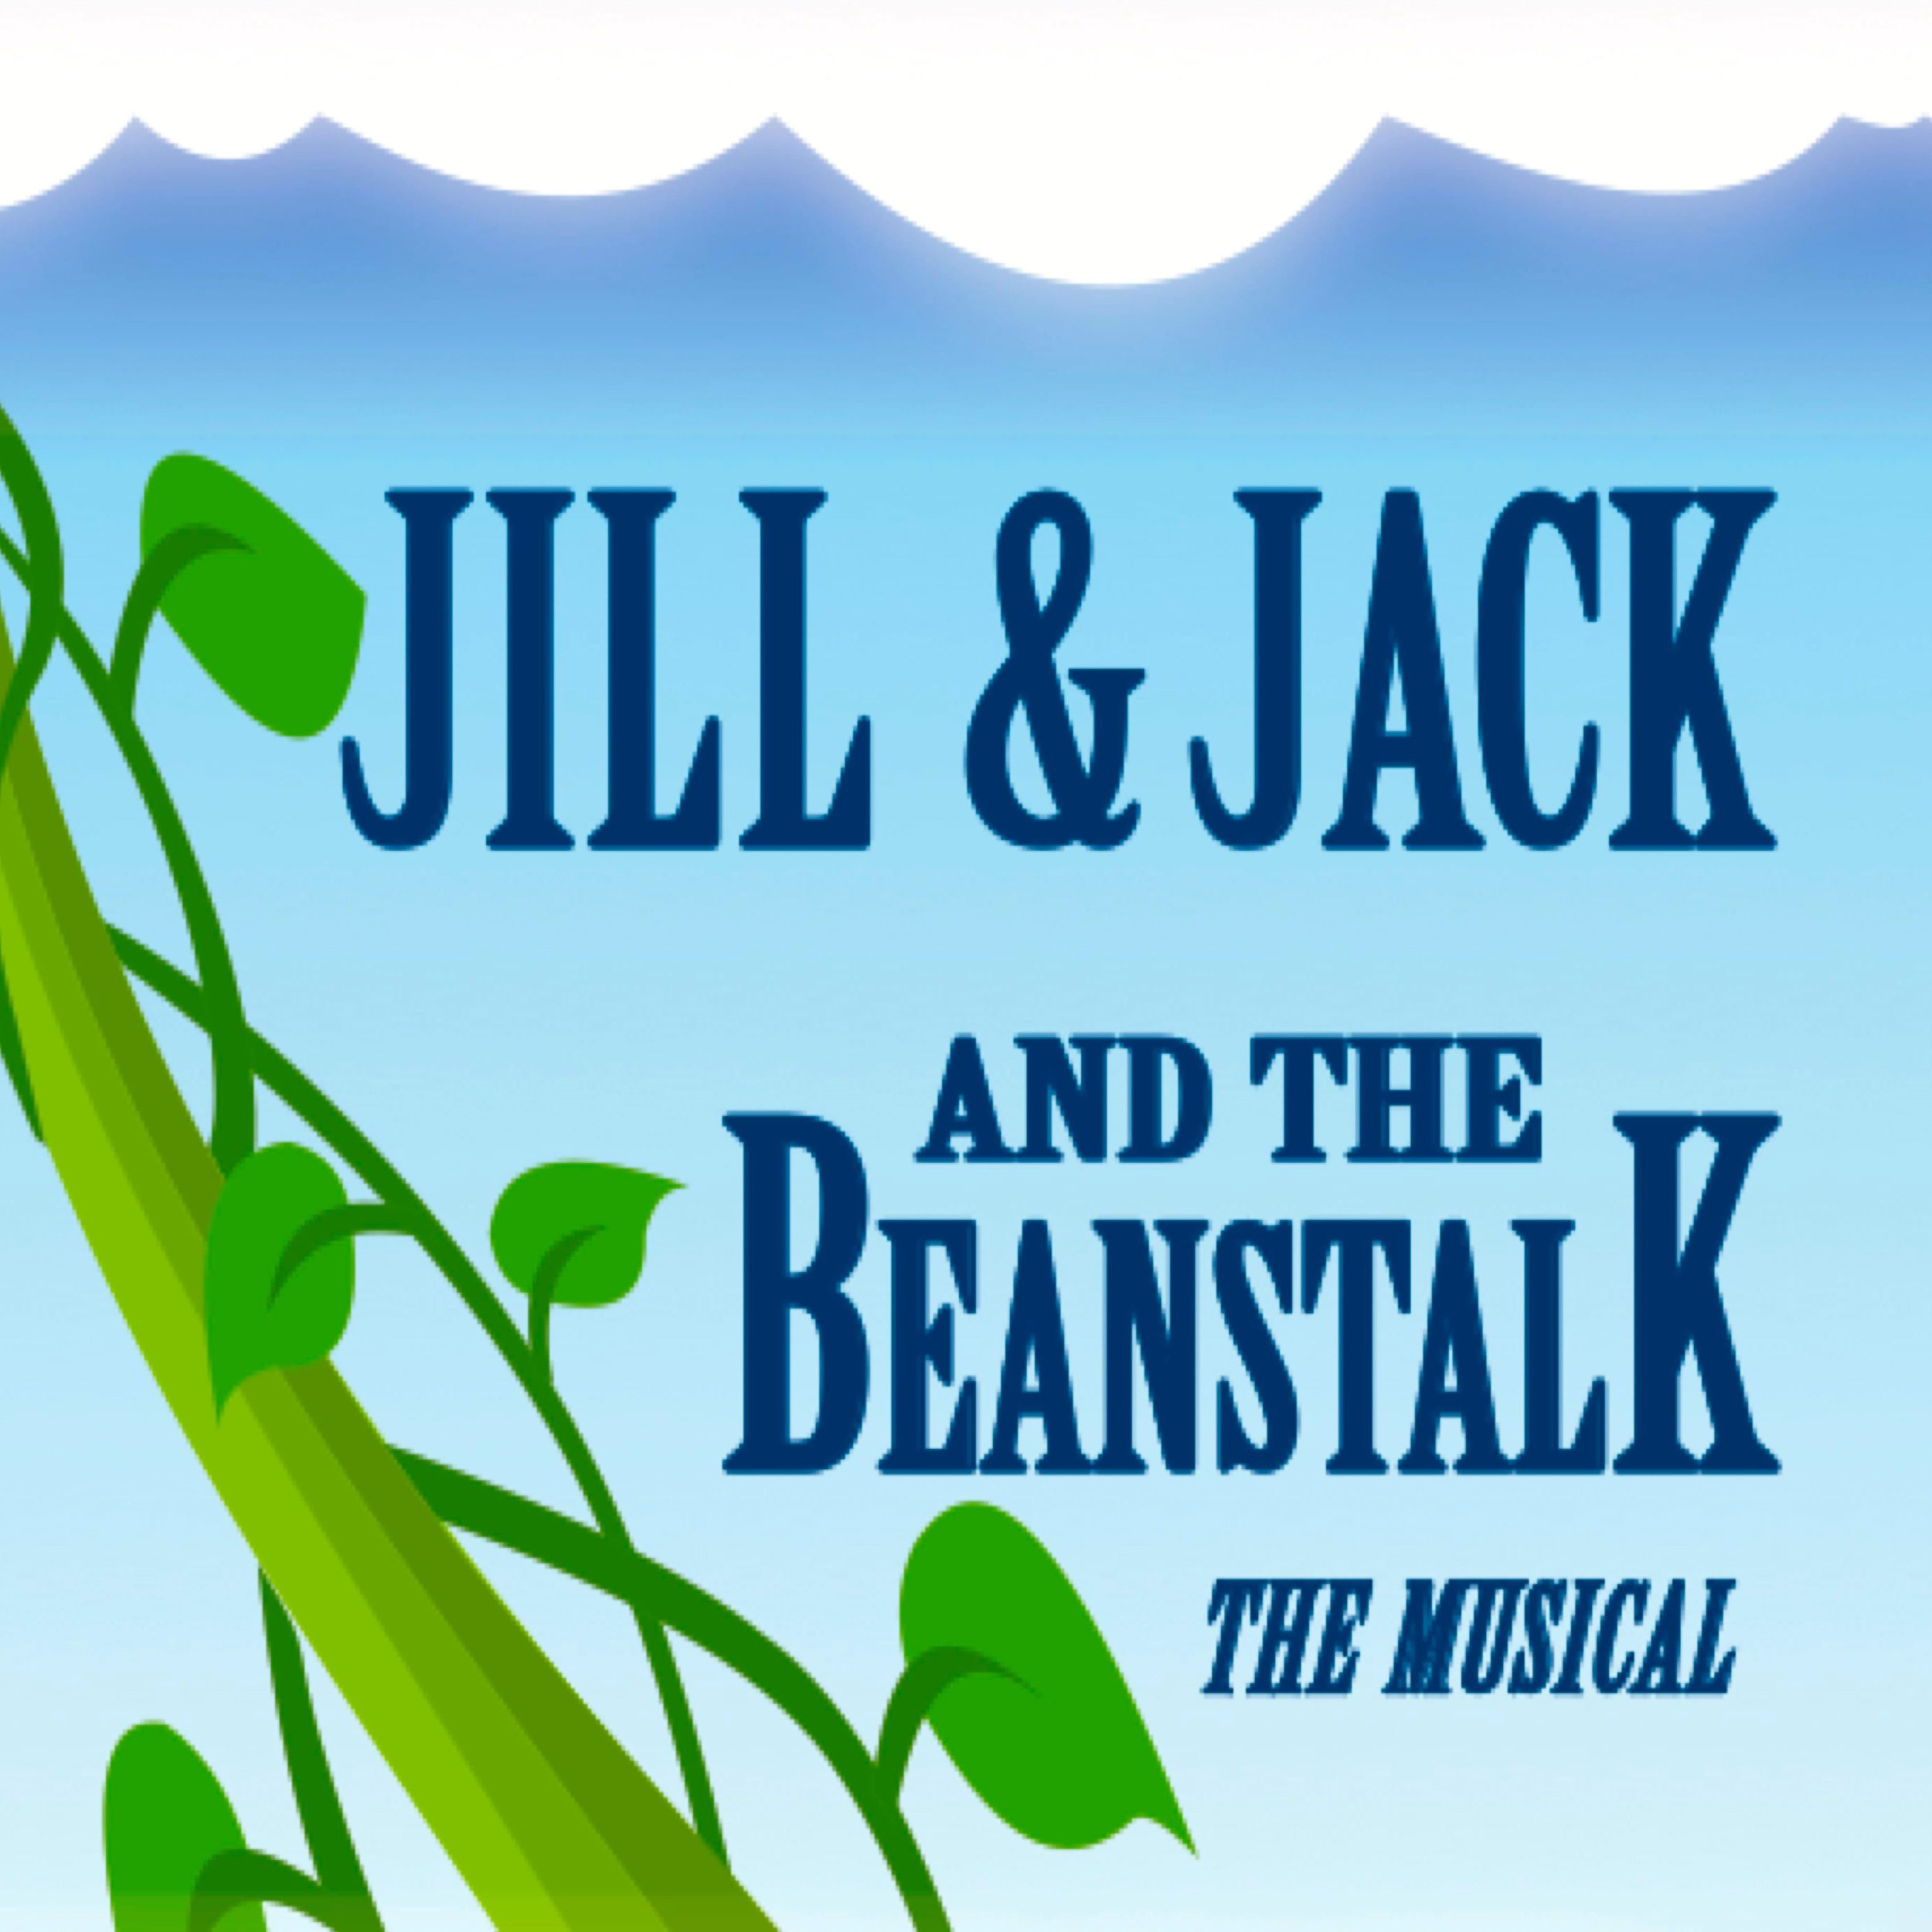 Jill & Jack and the Beanstalk - presented by Theatre AdventureImagination rules in this classic fairy tale where wit, determination, and love triumph over the villainous giant.PERFORMANCES:Wednesday, May 15th @ 10:30am + Thursday, May 16th @ 10:30am + Friday, May 17th @ 10:30amAll shows are held at the West Village Meeting House, 29 South St, West BrattleboroTICKETS: $10 (general), $5 (group)Sponsored by Green River Data Analysis